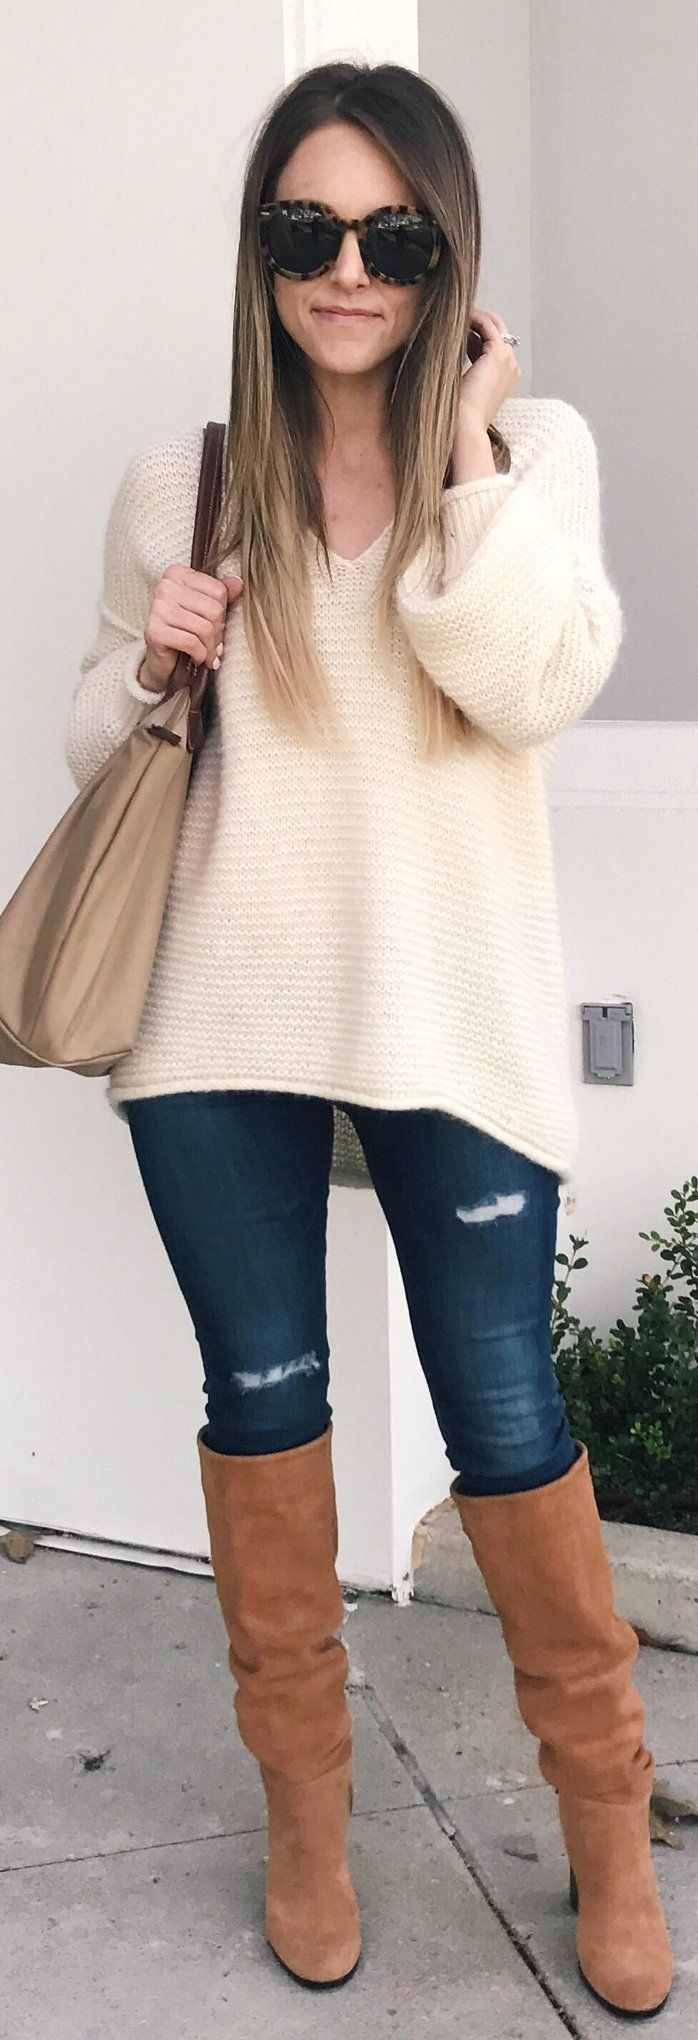 #winter #fashion / White V-neck Knit / Ripped Skinny Jeans / Brown Boots